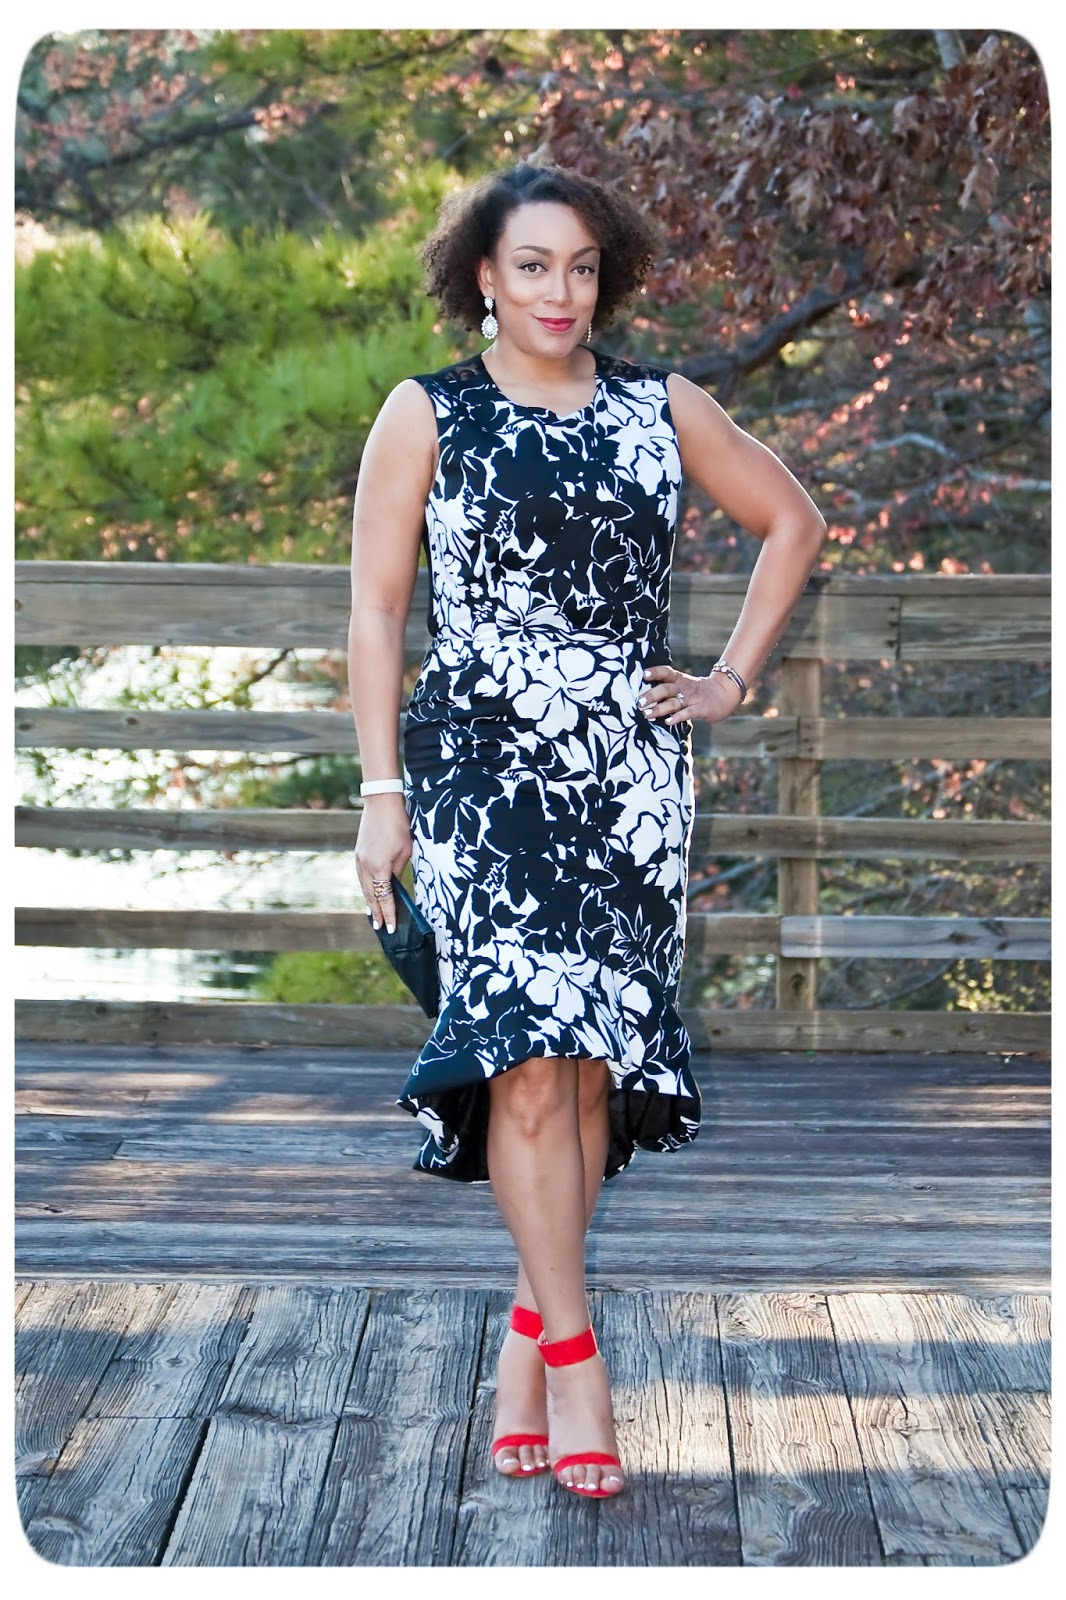 Floral & Lace Panel Dress Inpired by Clements Ribeiro made with Mood Fabrics - Erica B.'s - DIY Style!